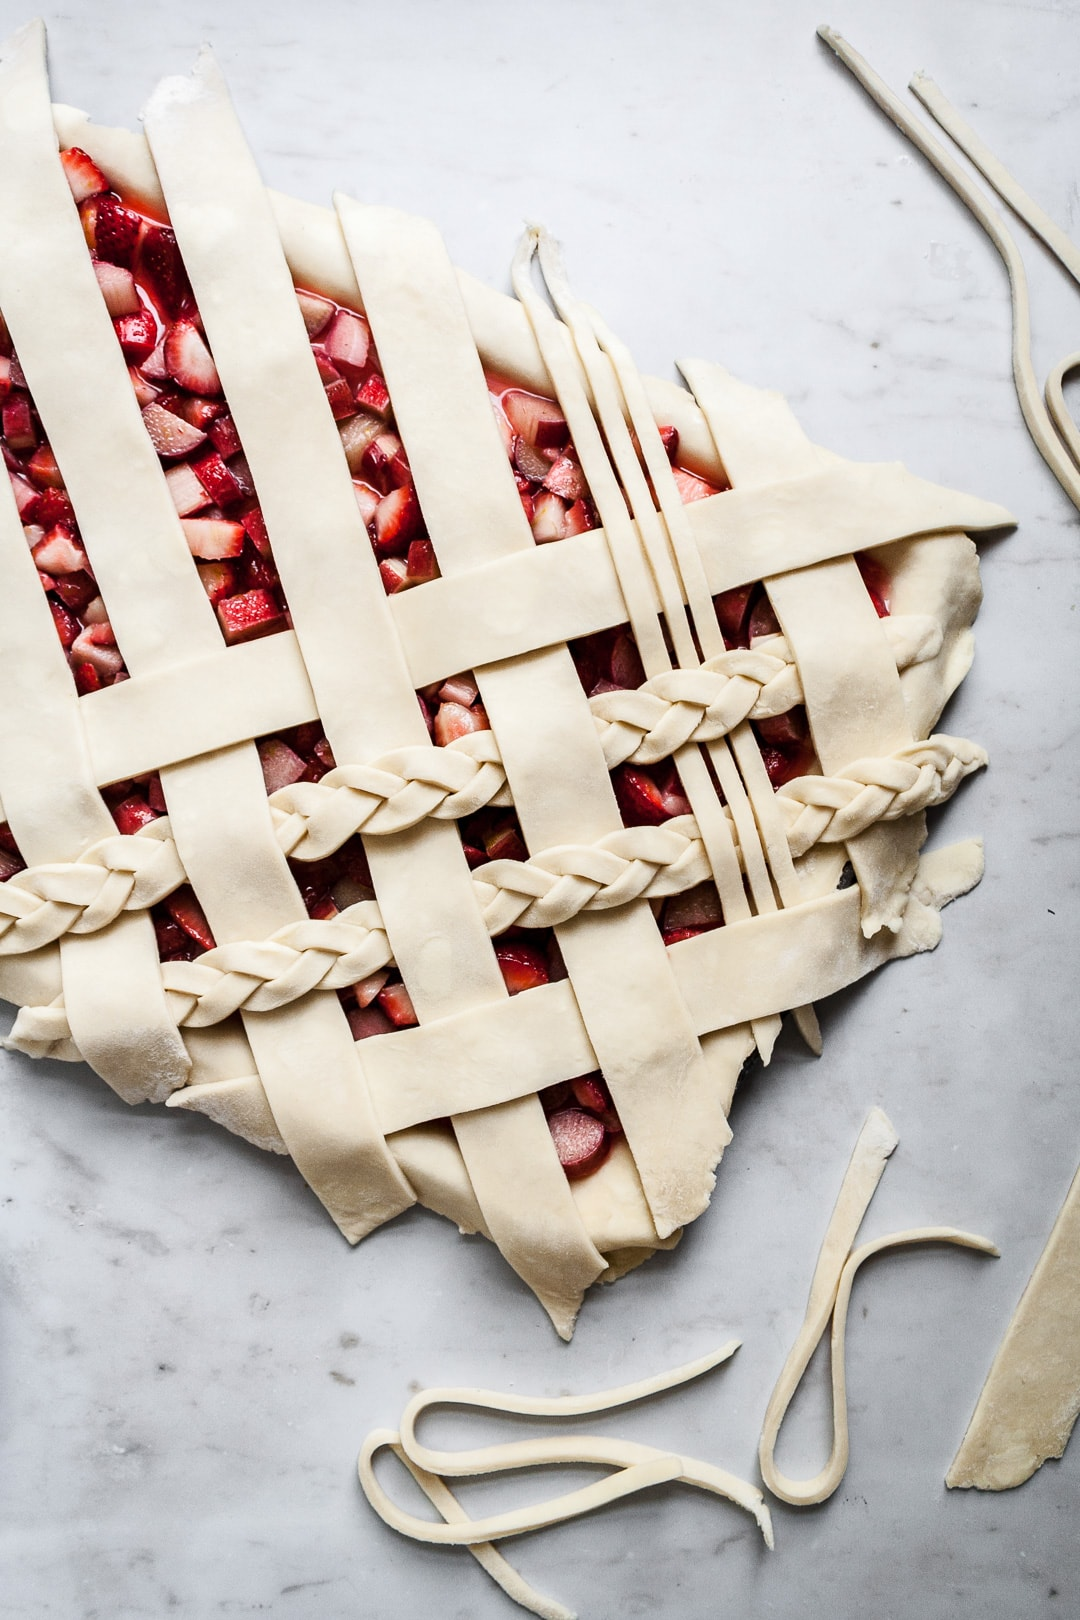 Top view of unbaked strawberry rhubarb slab pie with angled woven lattice crust with braids on a marble background with dough scraps nearby